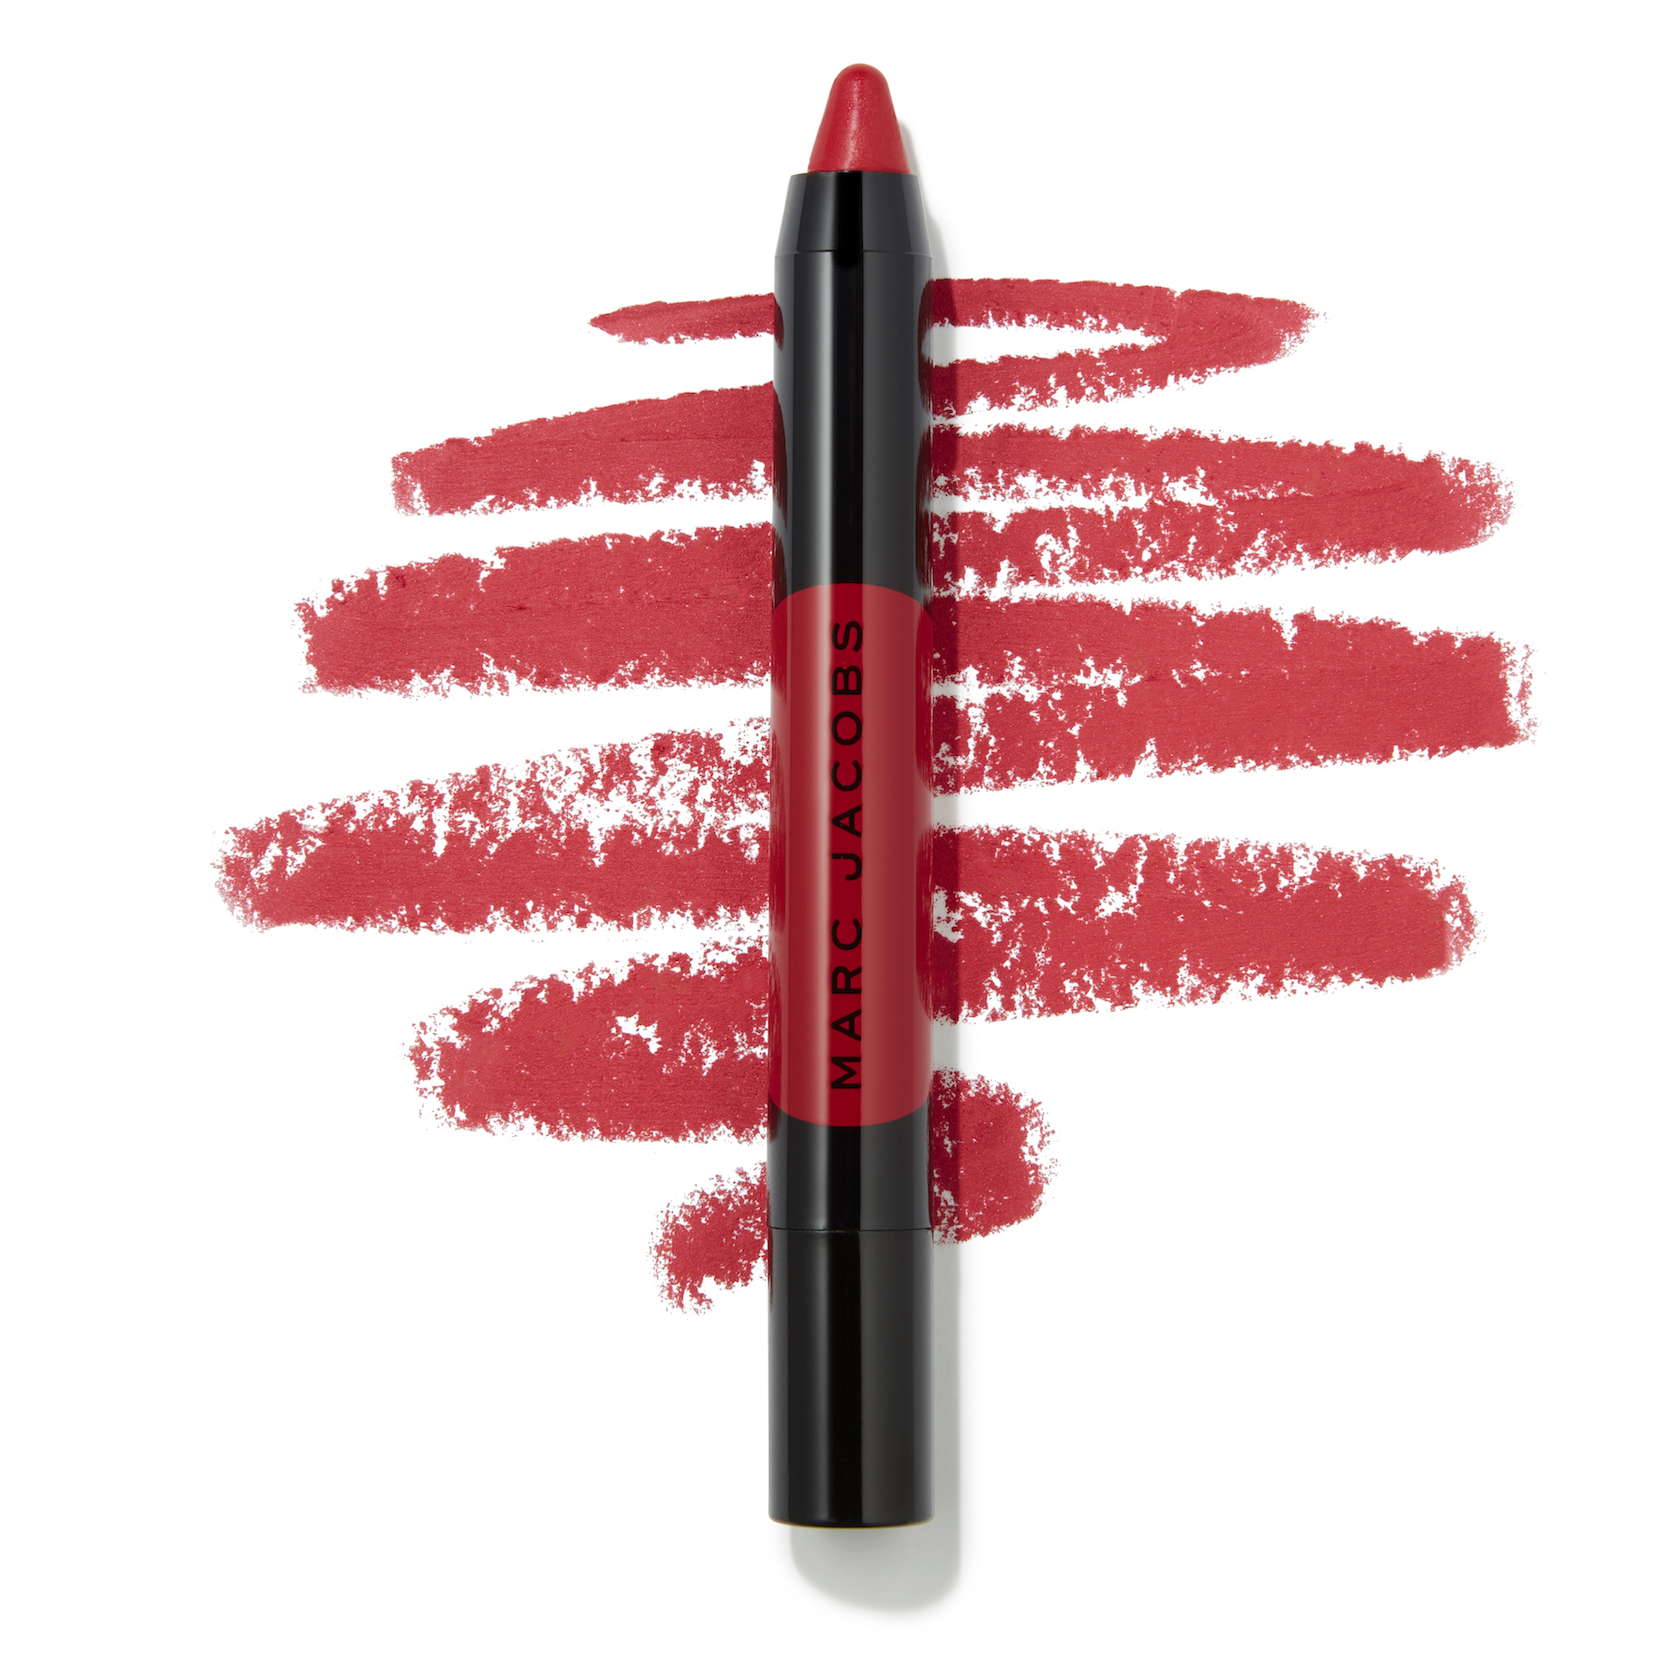 Marc Jacobs Beauty Le Marc Liquid Lip Crayon - How Rouge Swatch - AED 125